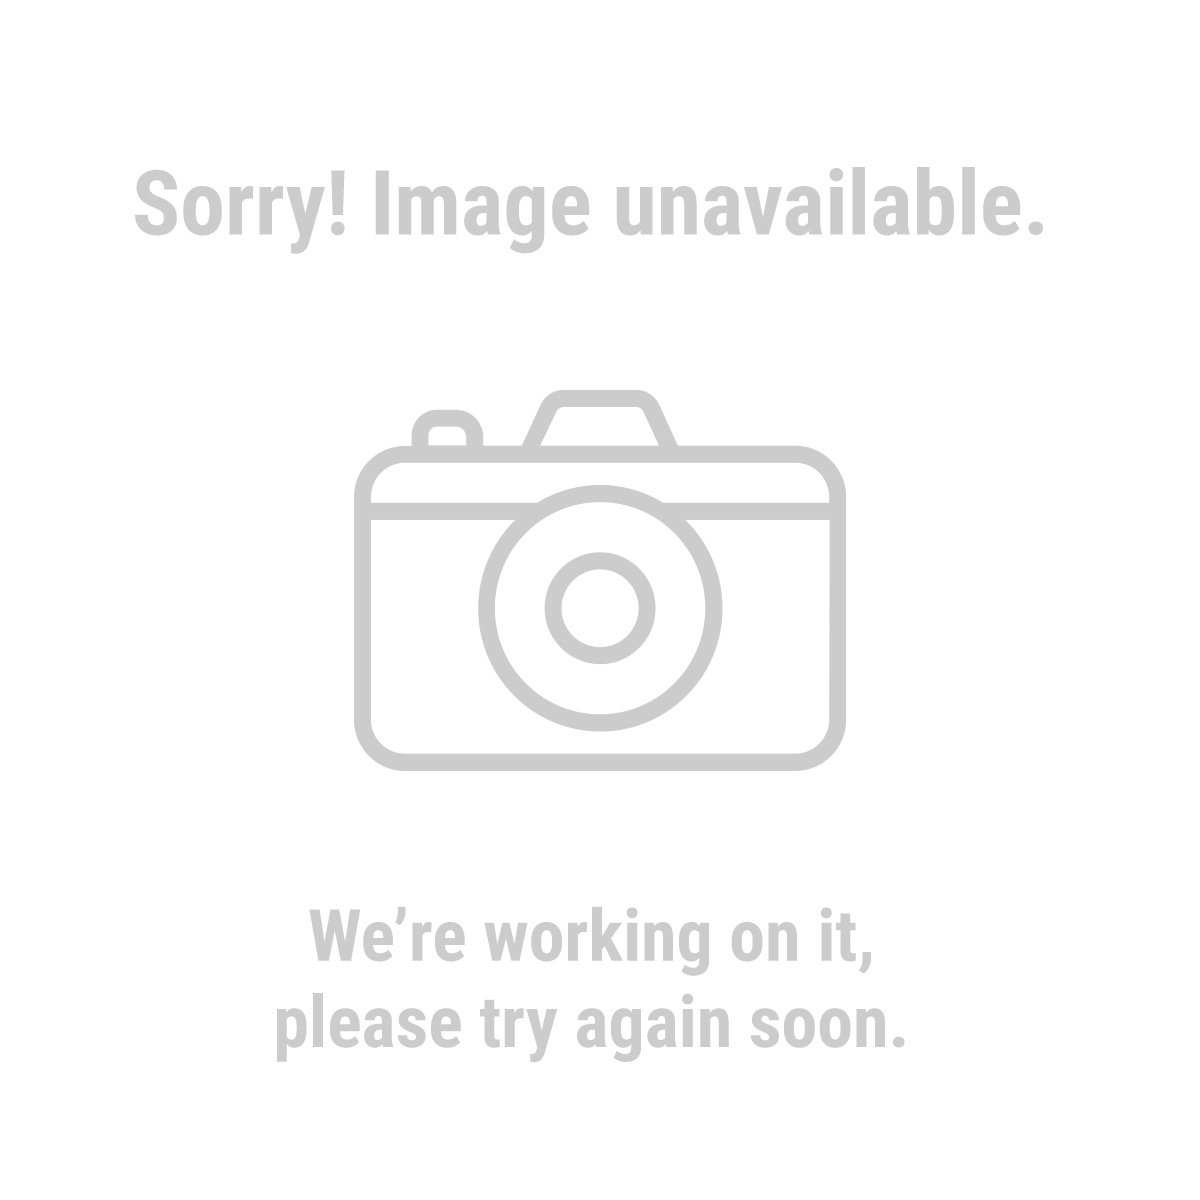 93897_zzz_500_1 50 ft compact electric drain cleaner Marco Snake Cable at readyjetset.co